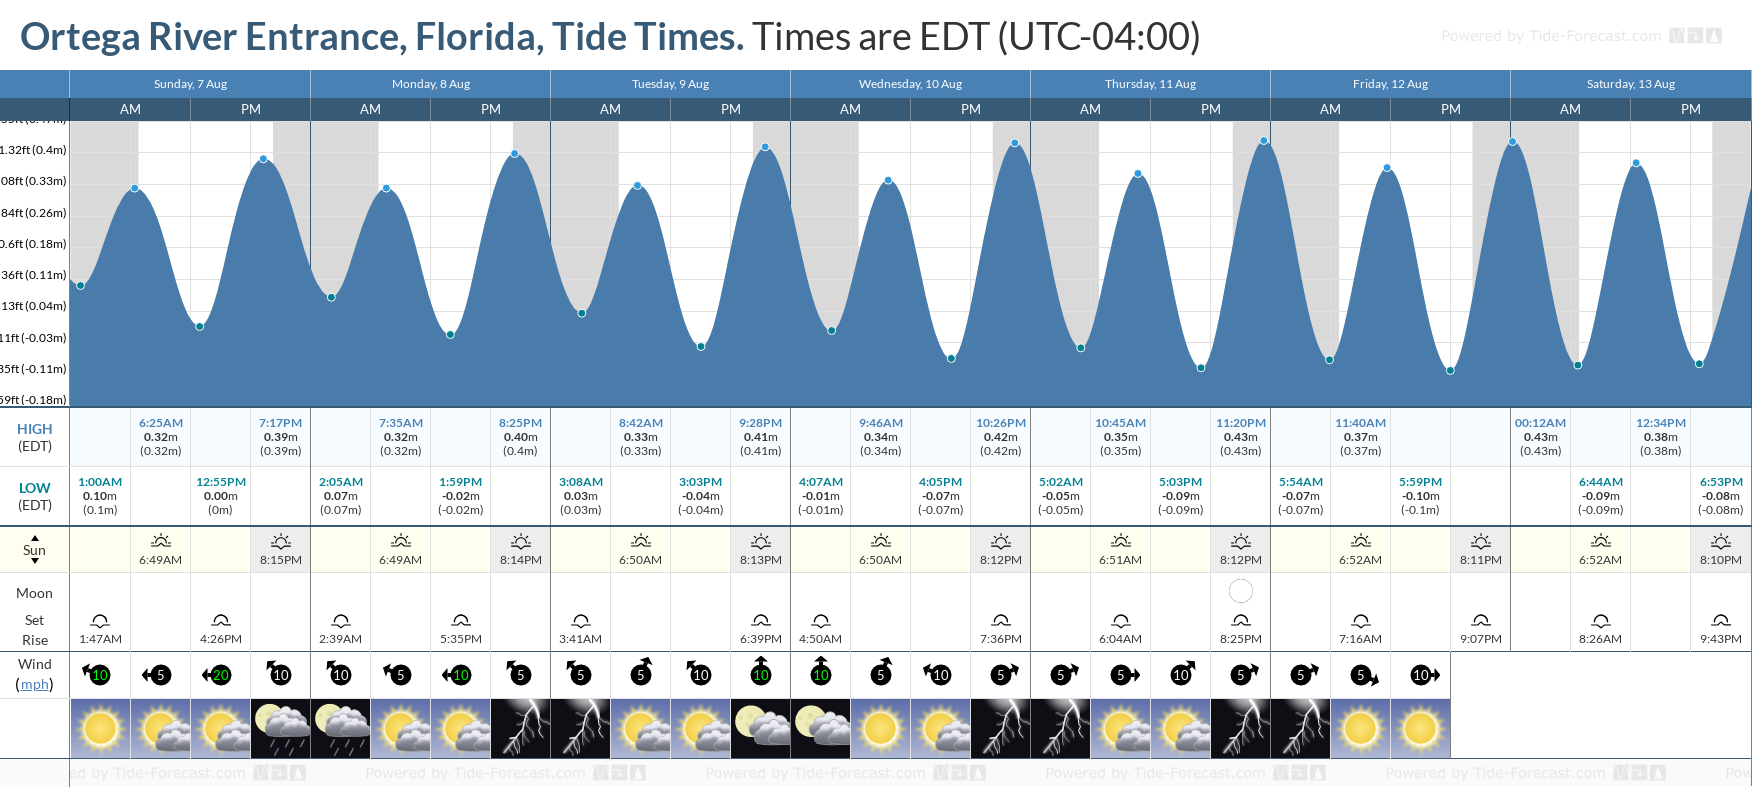 Ortega River Entrance, Florida Tide Chart including high and low tide tide times for the next 7 days